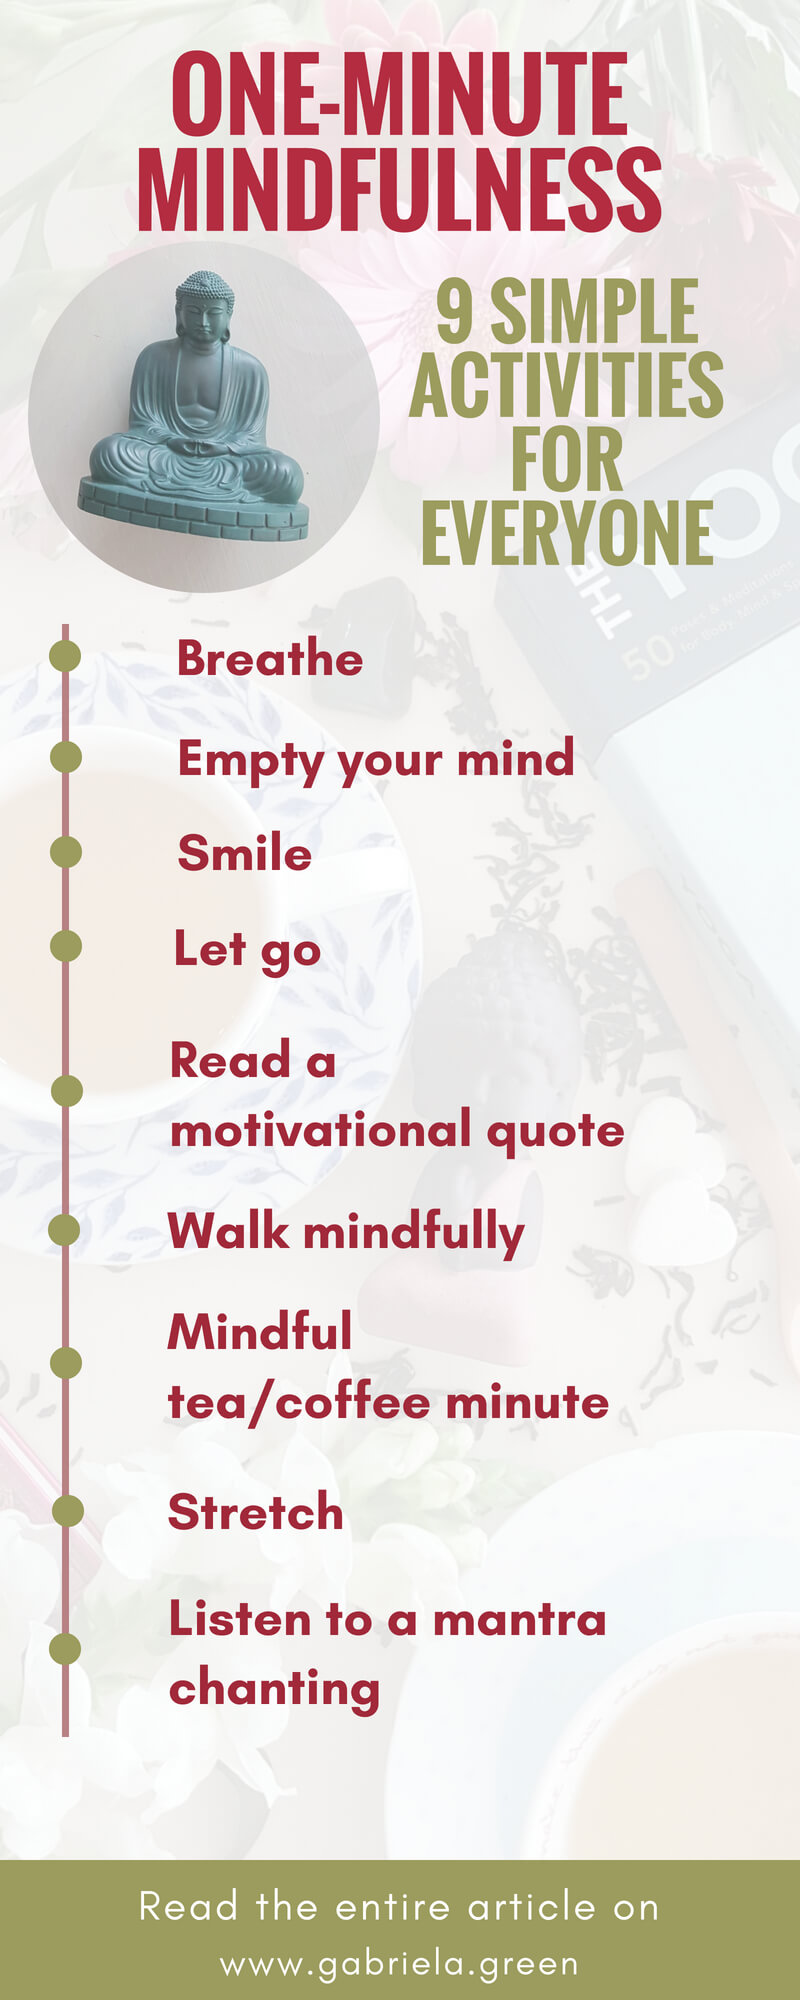 One-minute mindfulness - 9 simple activities for everyone _ Gabriela Green _ www.gabriela.green (1)